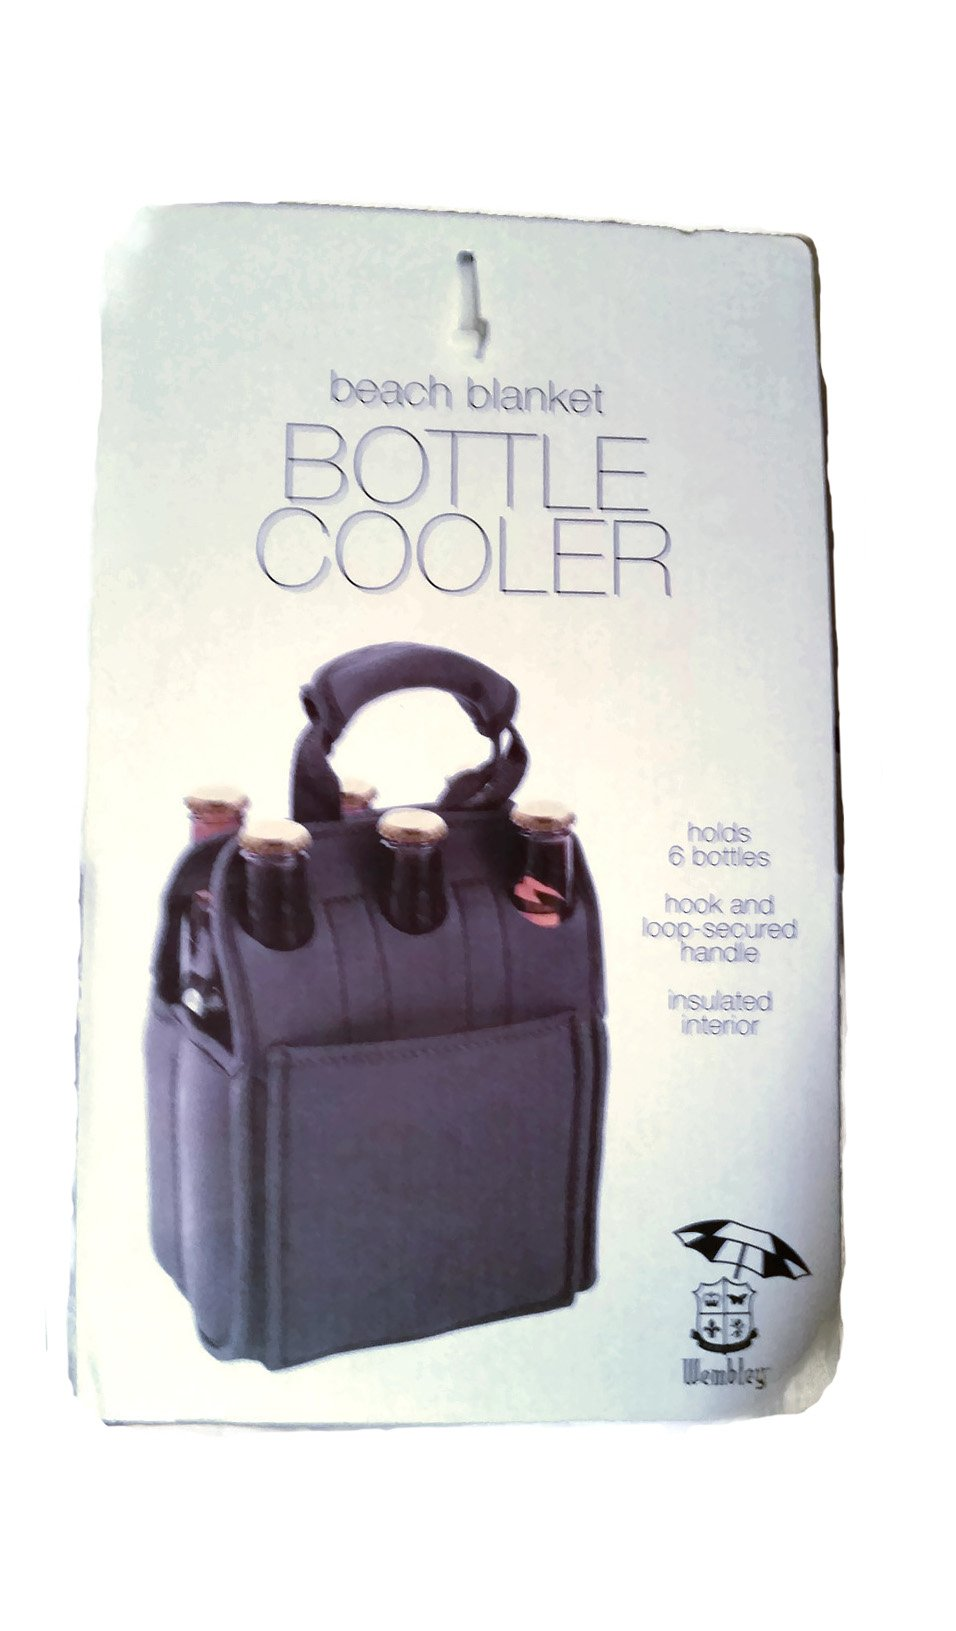 Wembley beach blanket BOTTLE COOLER